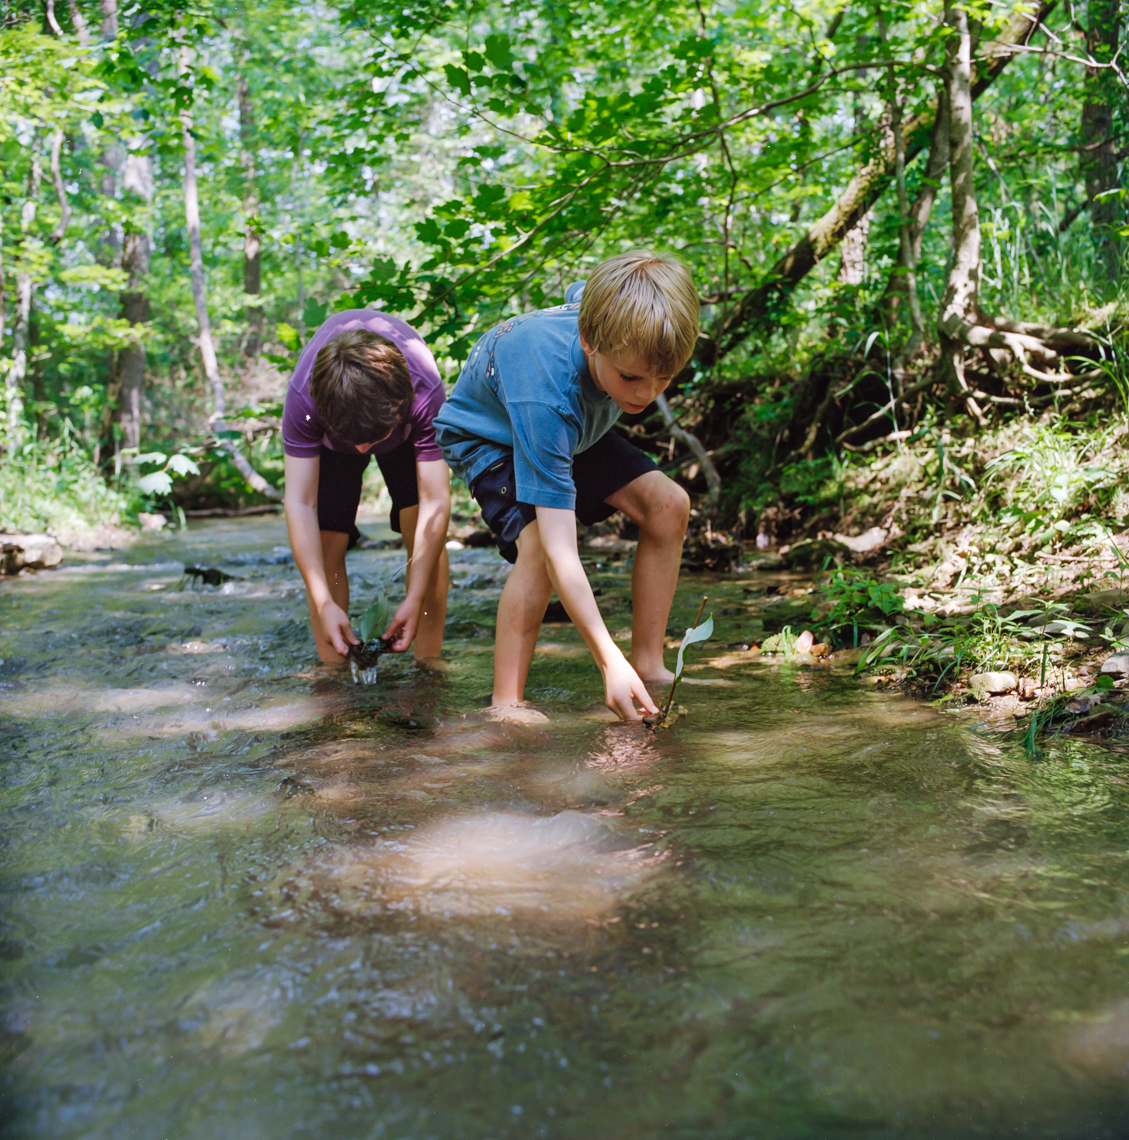 Boys exploring. Family, kids, outdoor, together, love, creek, river, woods, trees